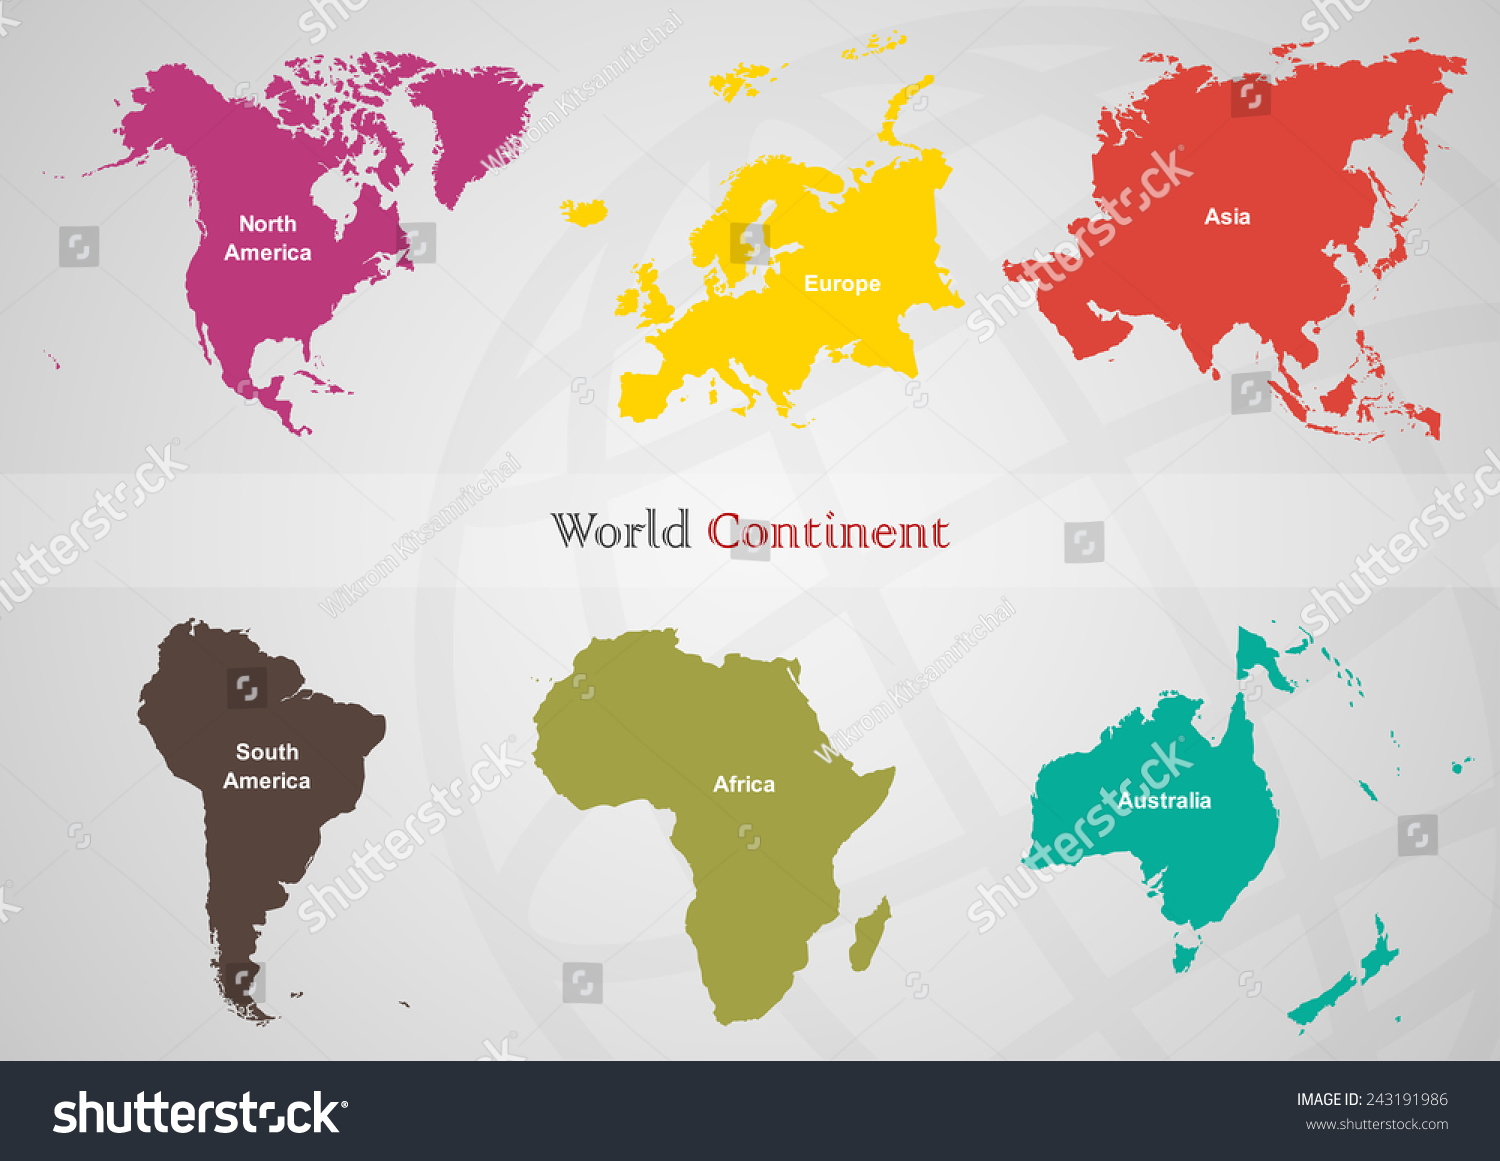 Separated area each continent world on stock vector 243191986 the separated area of each continent in the world on gray back groundeps10 gumiabroncs Choice Image